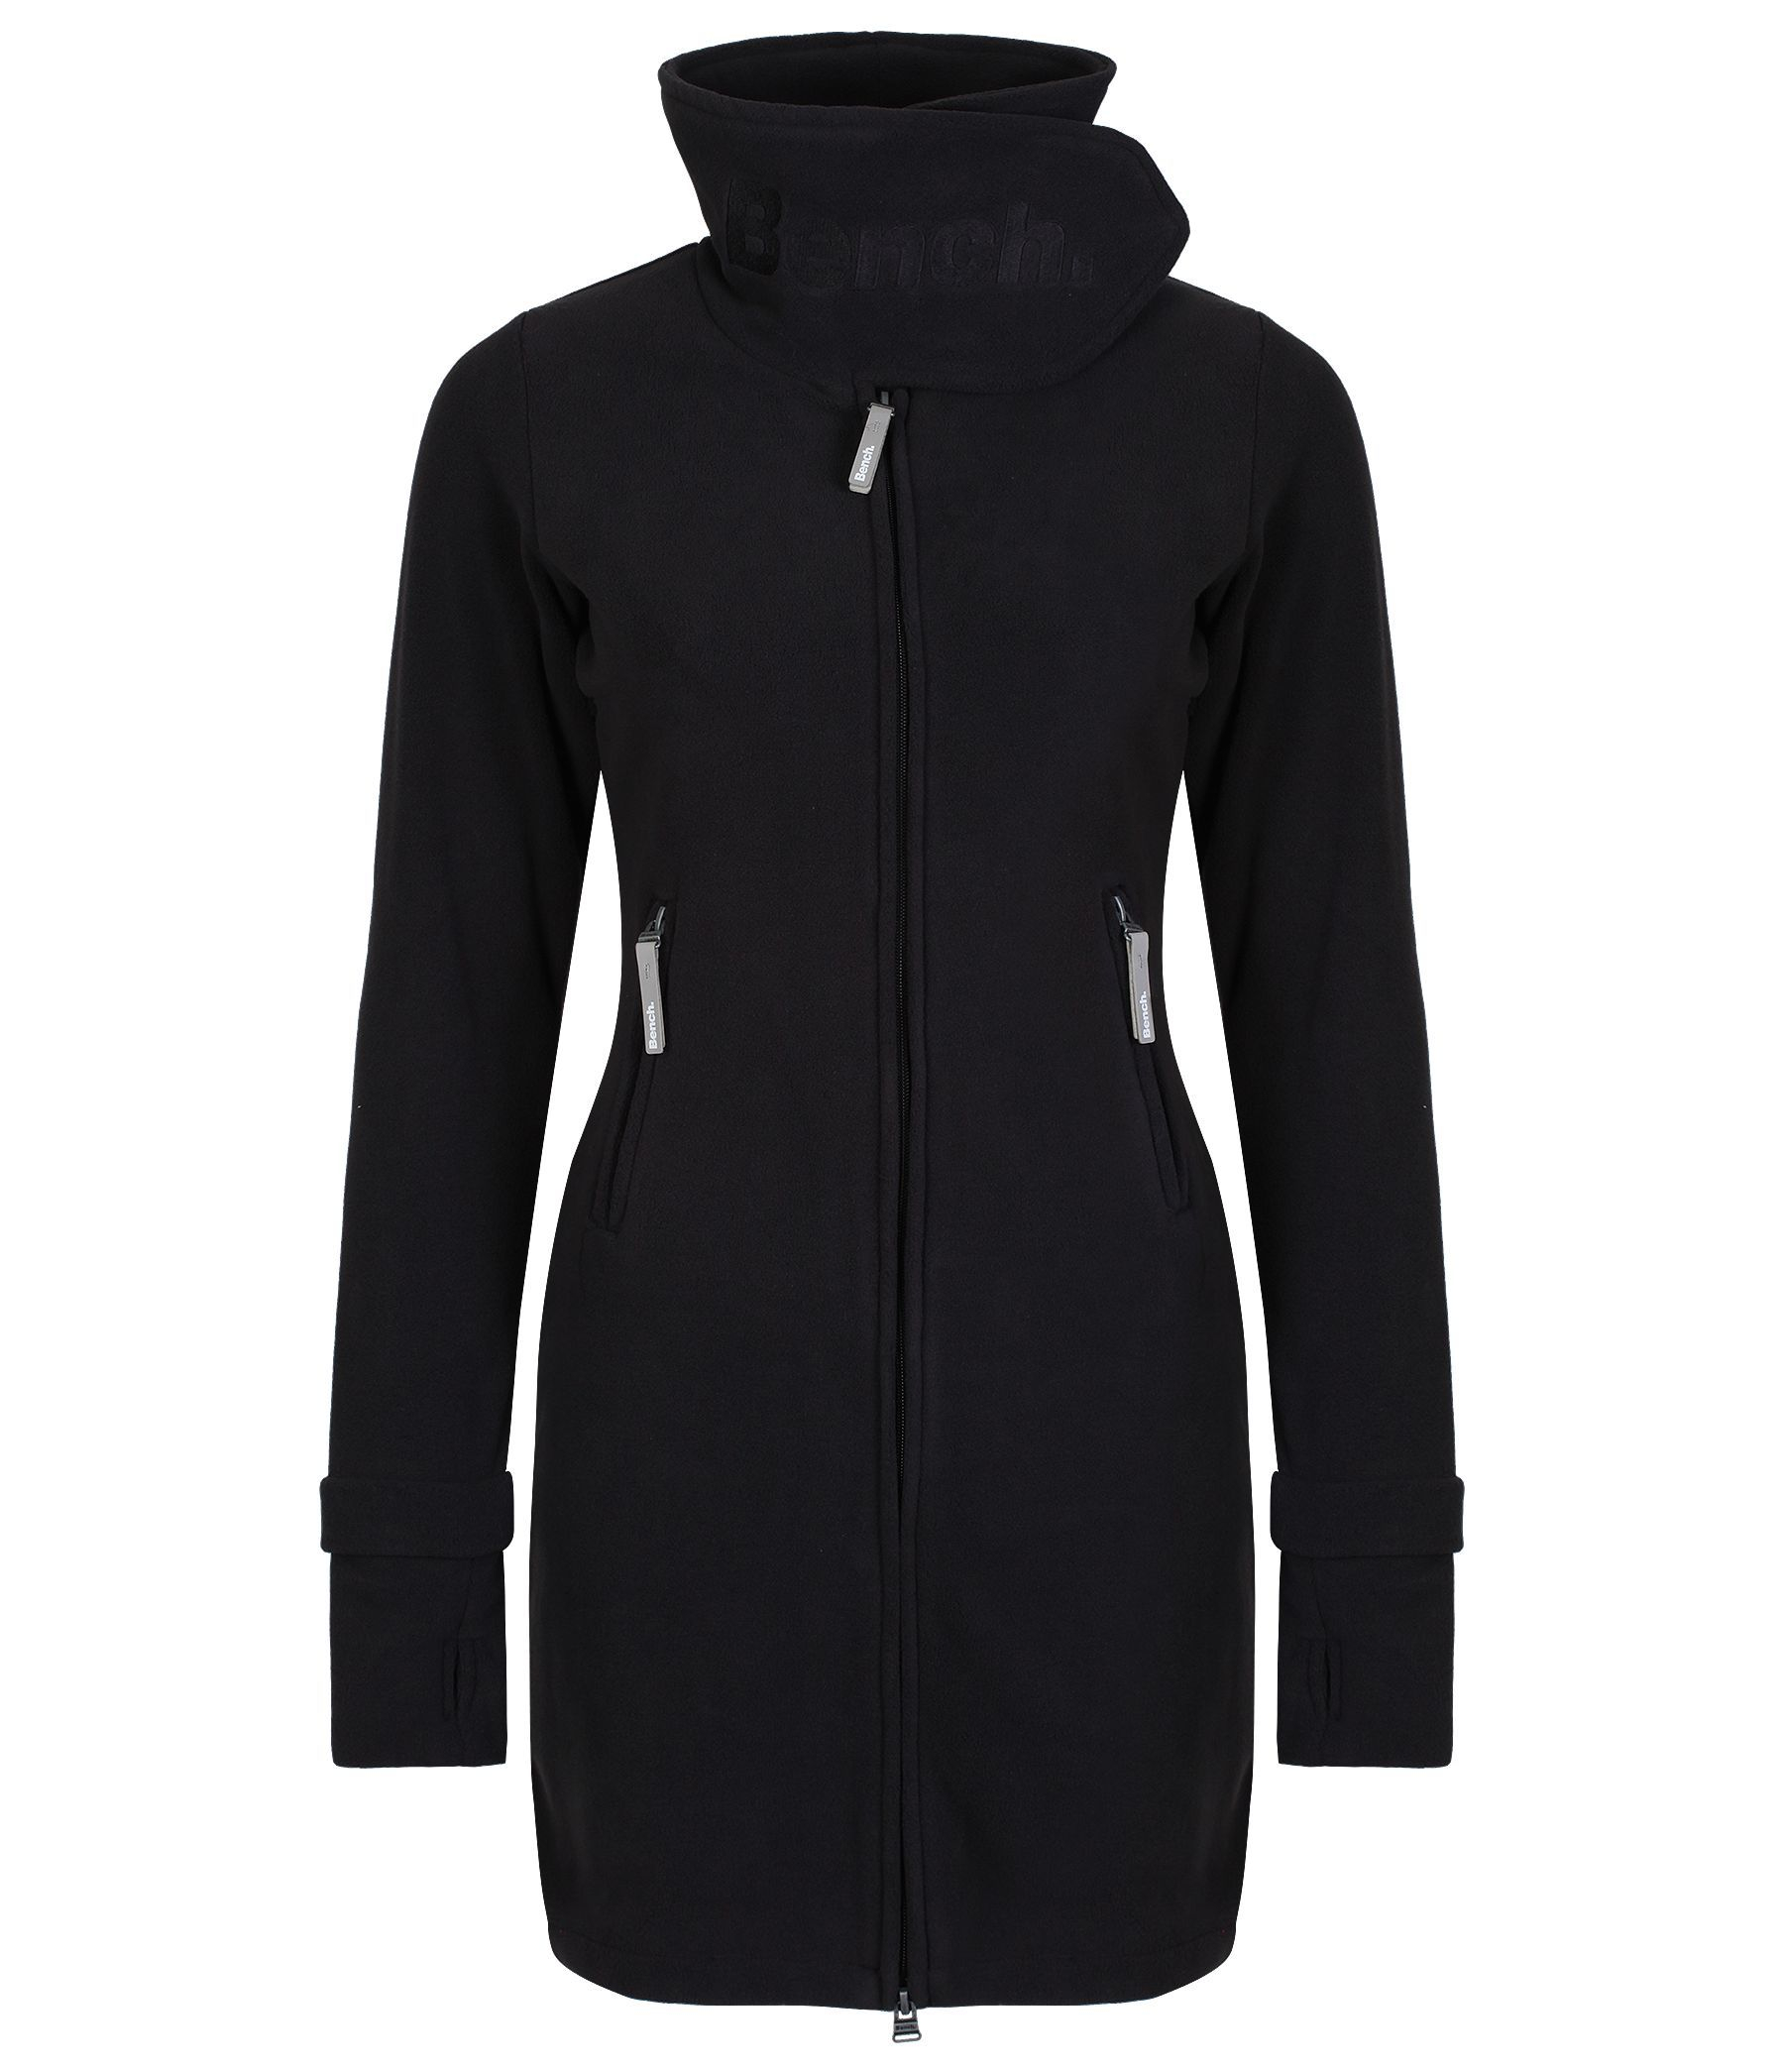 Bench Long Neck Zip Up Fleece Jacket In Black Lyst